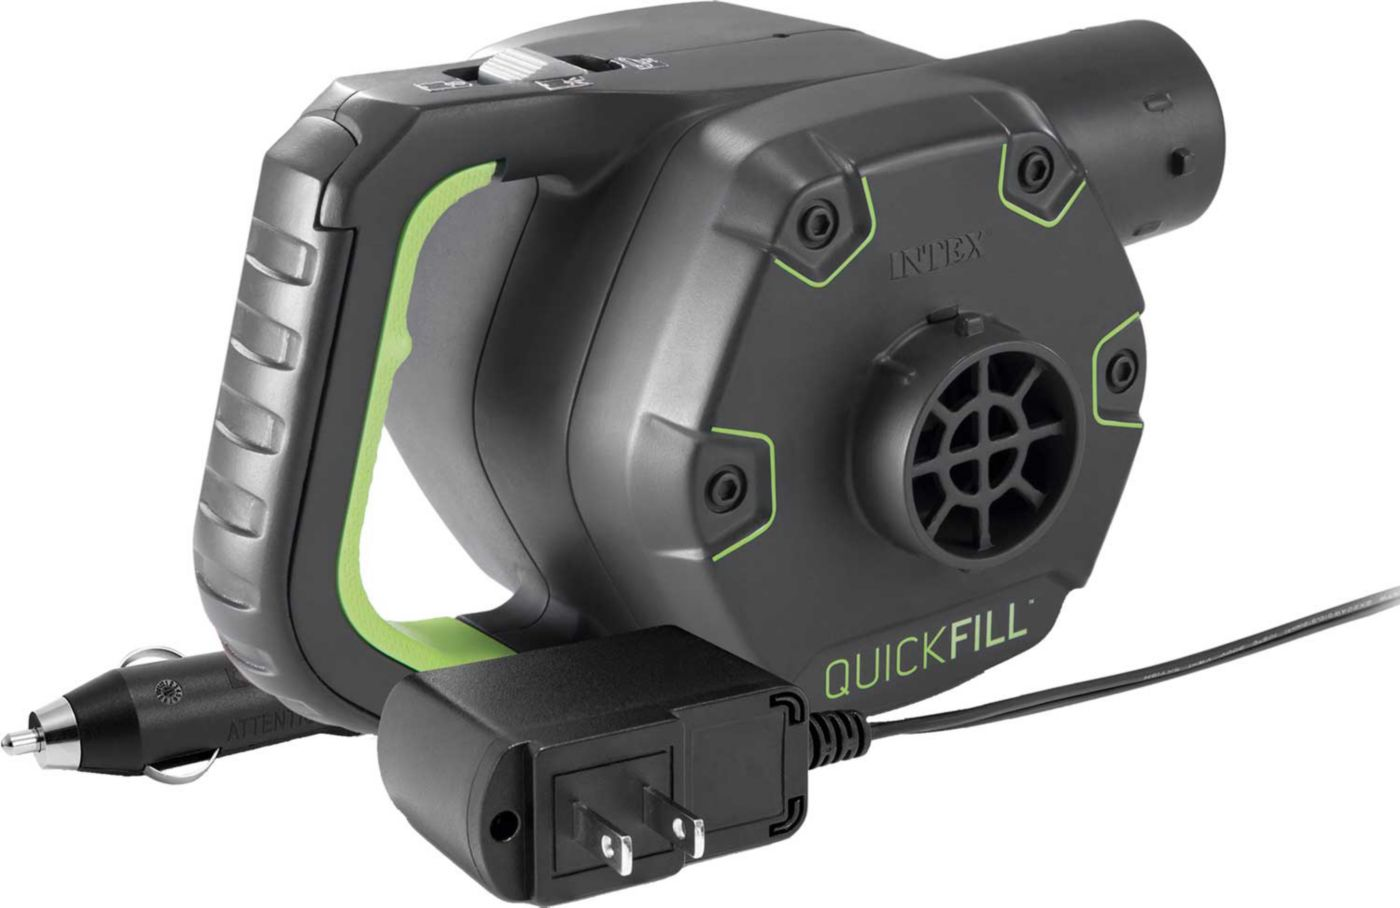 Intex Quick-Fill Rechargeable Pump